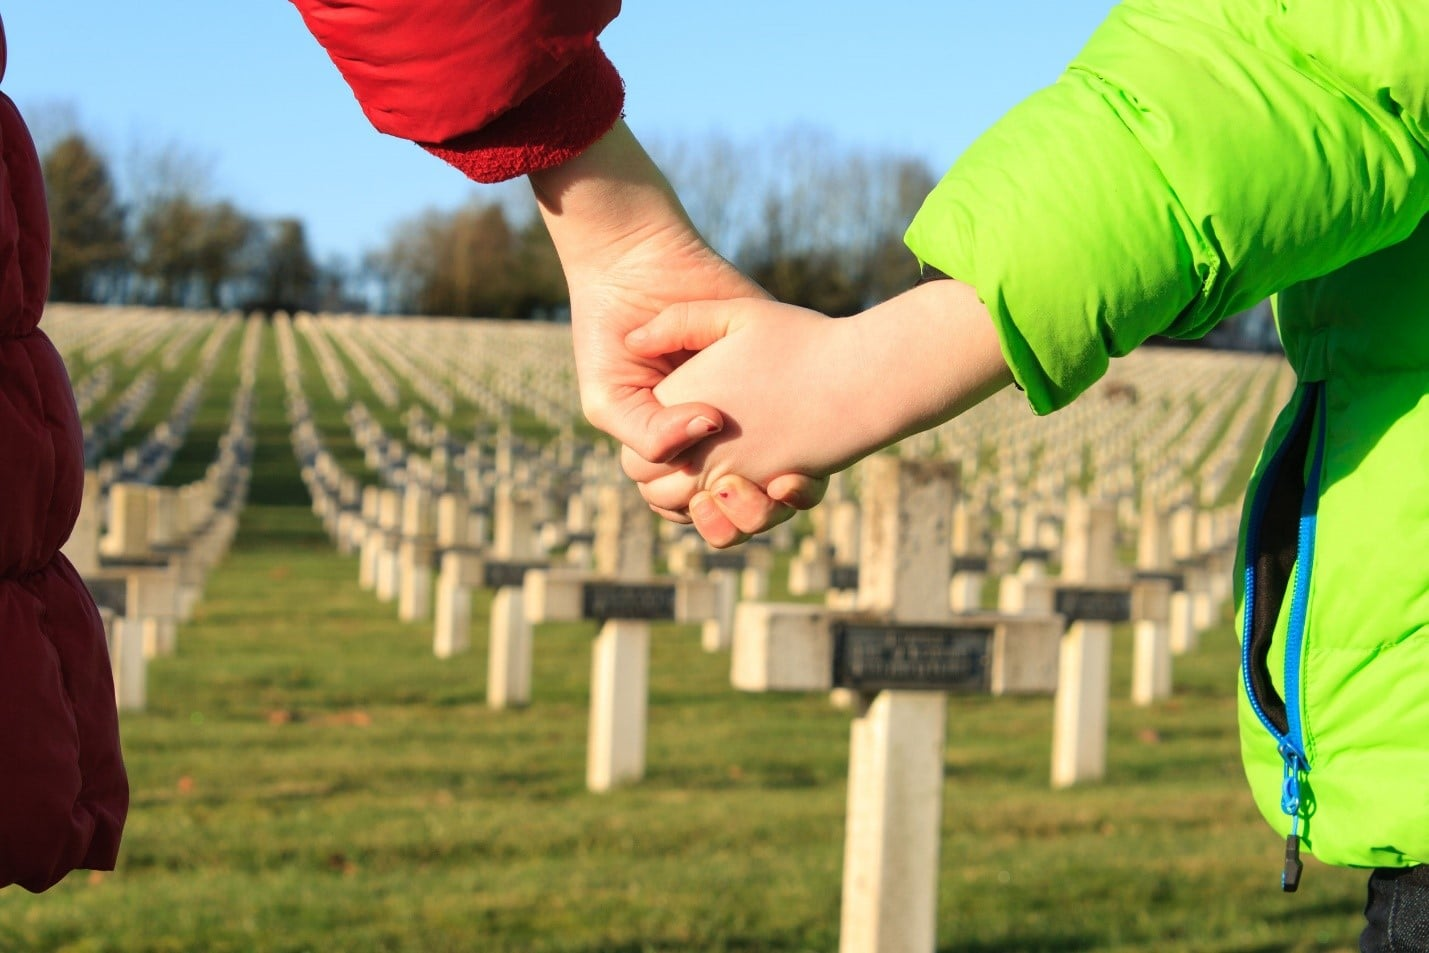 If You are Considering a Wrongful Death Suit